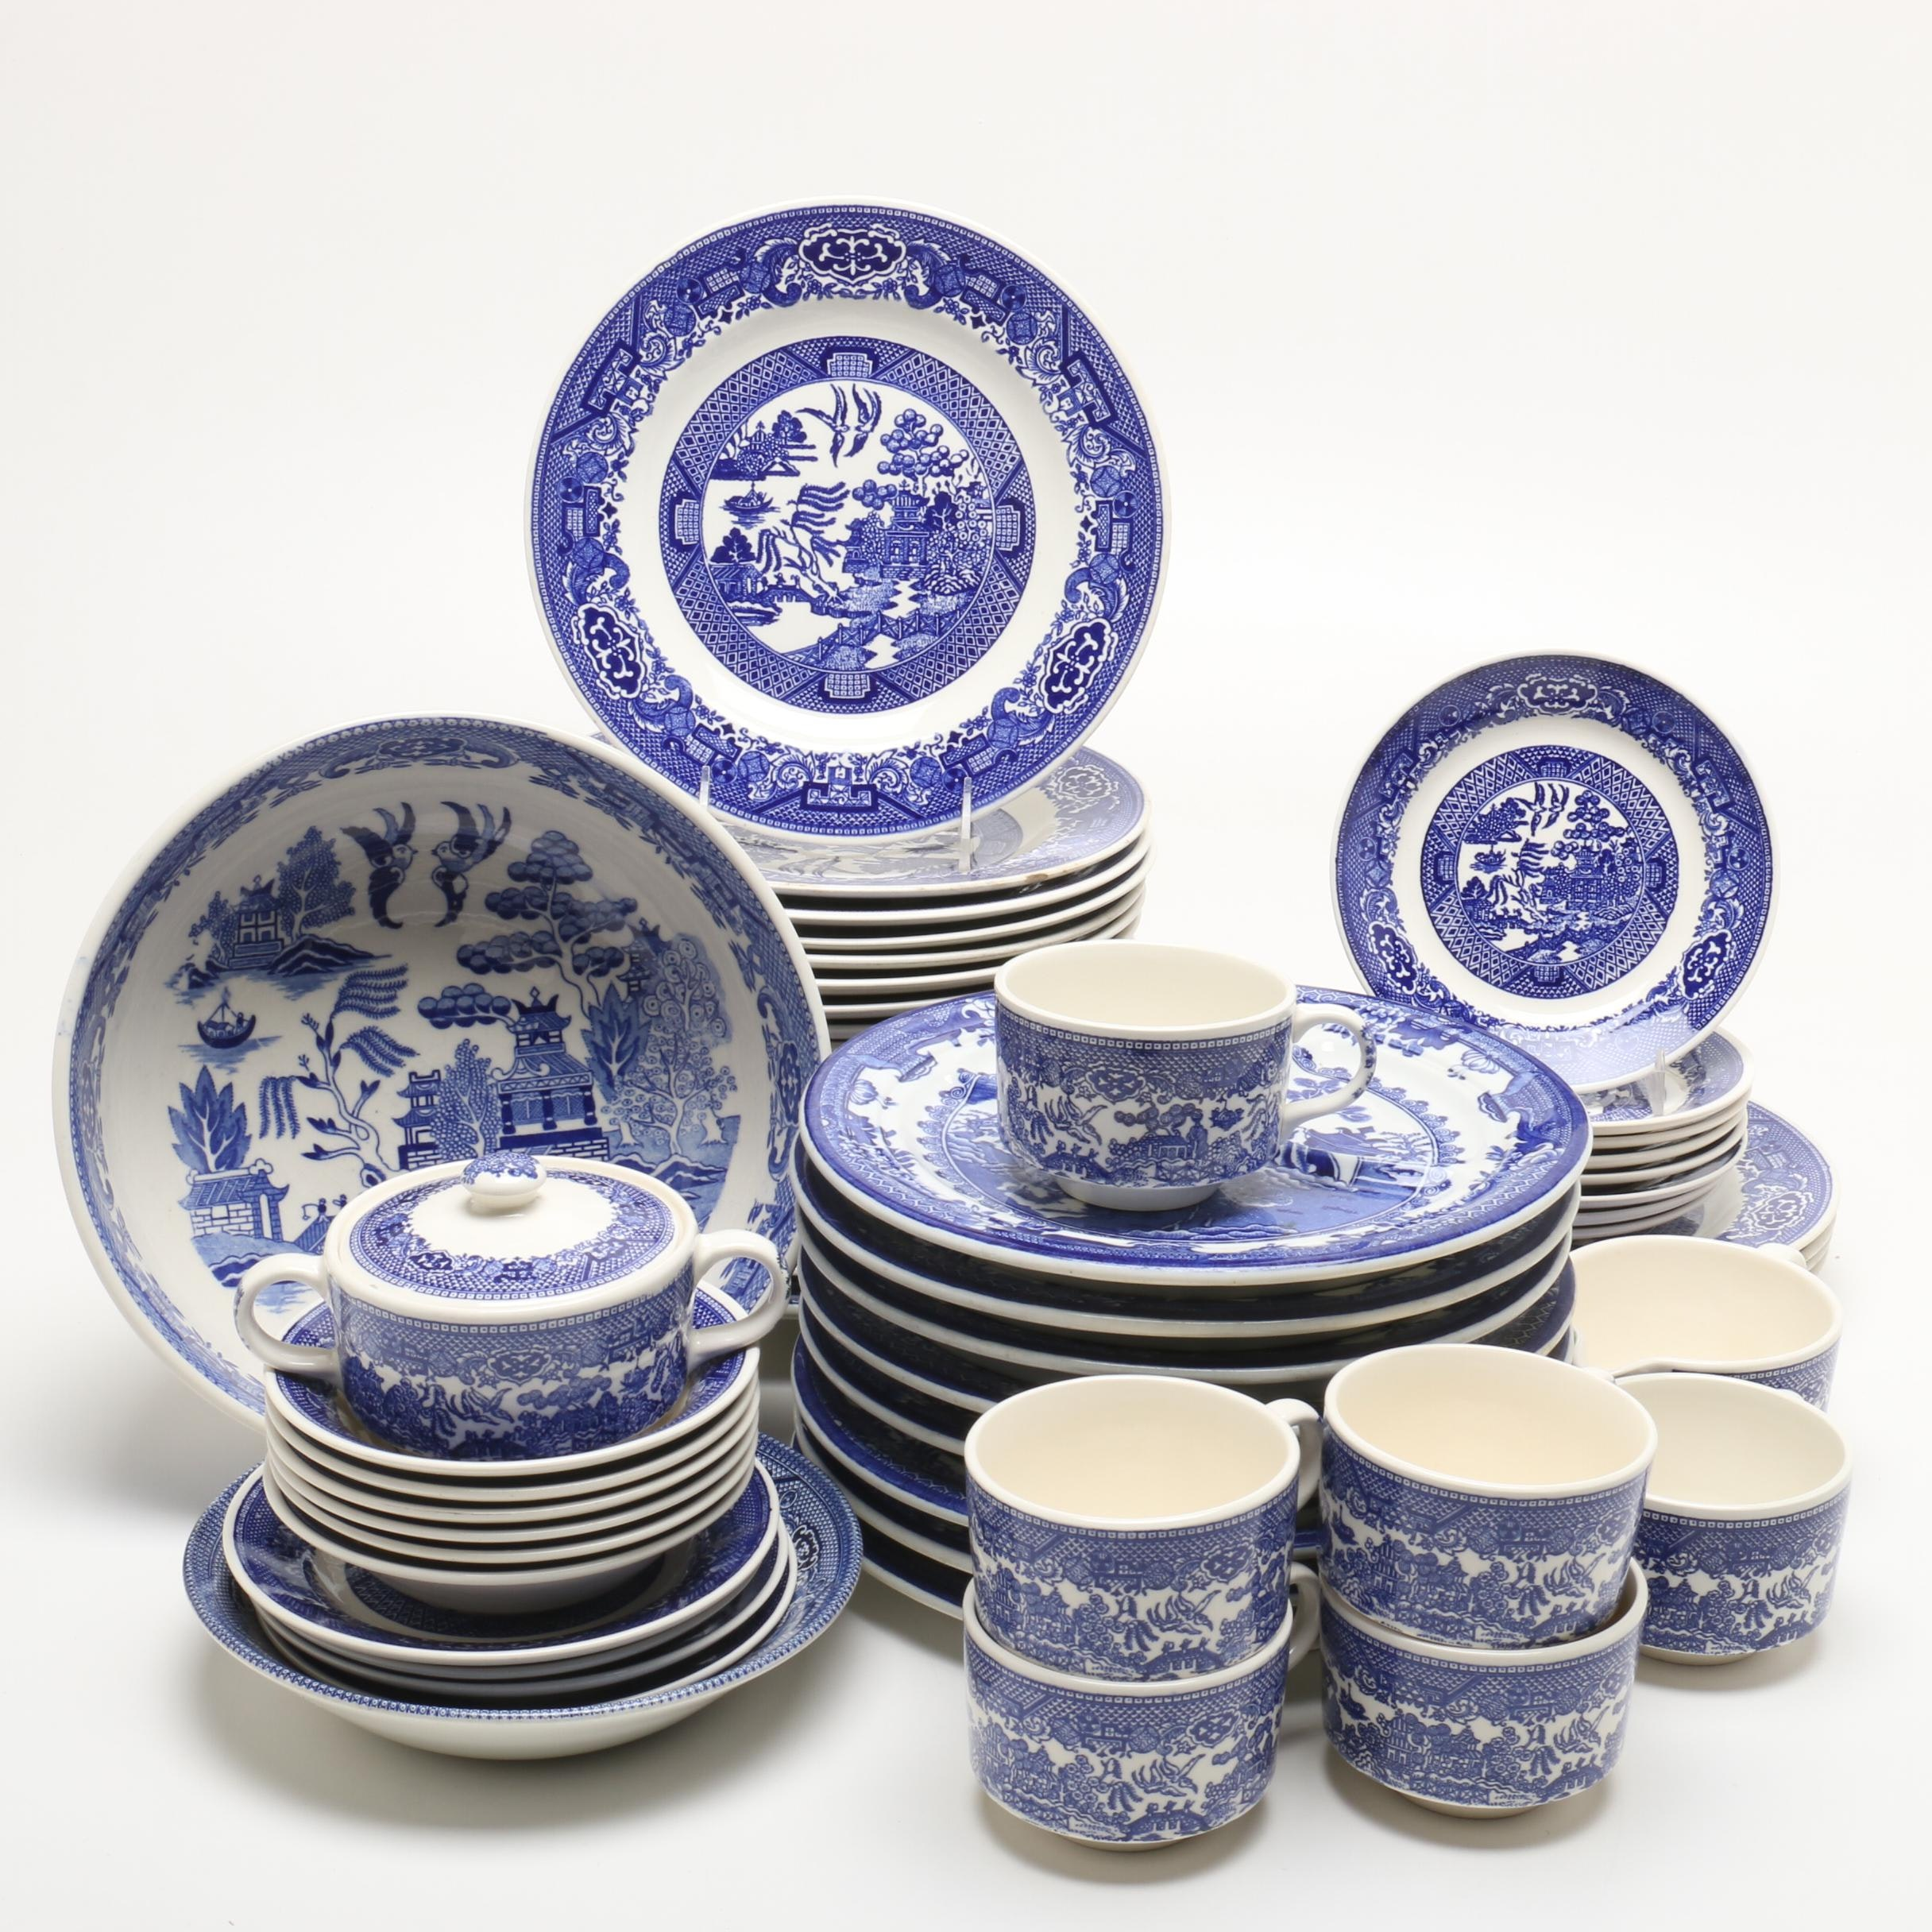 Mixture of Willow Ware Dinnerware